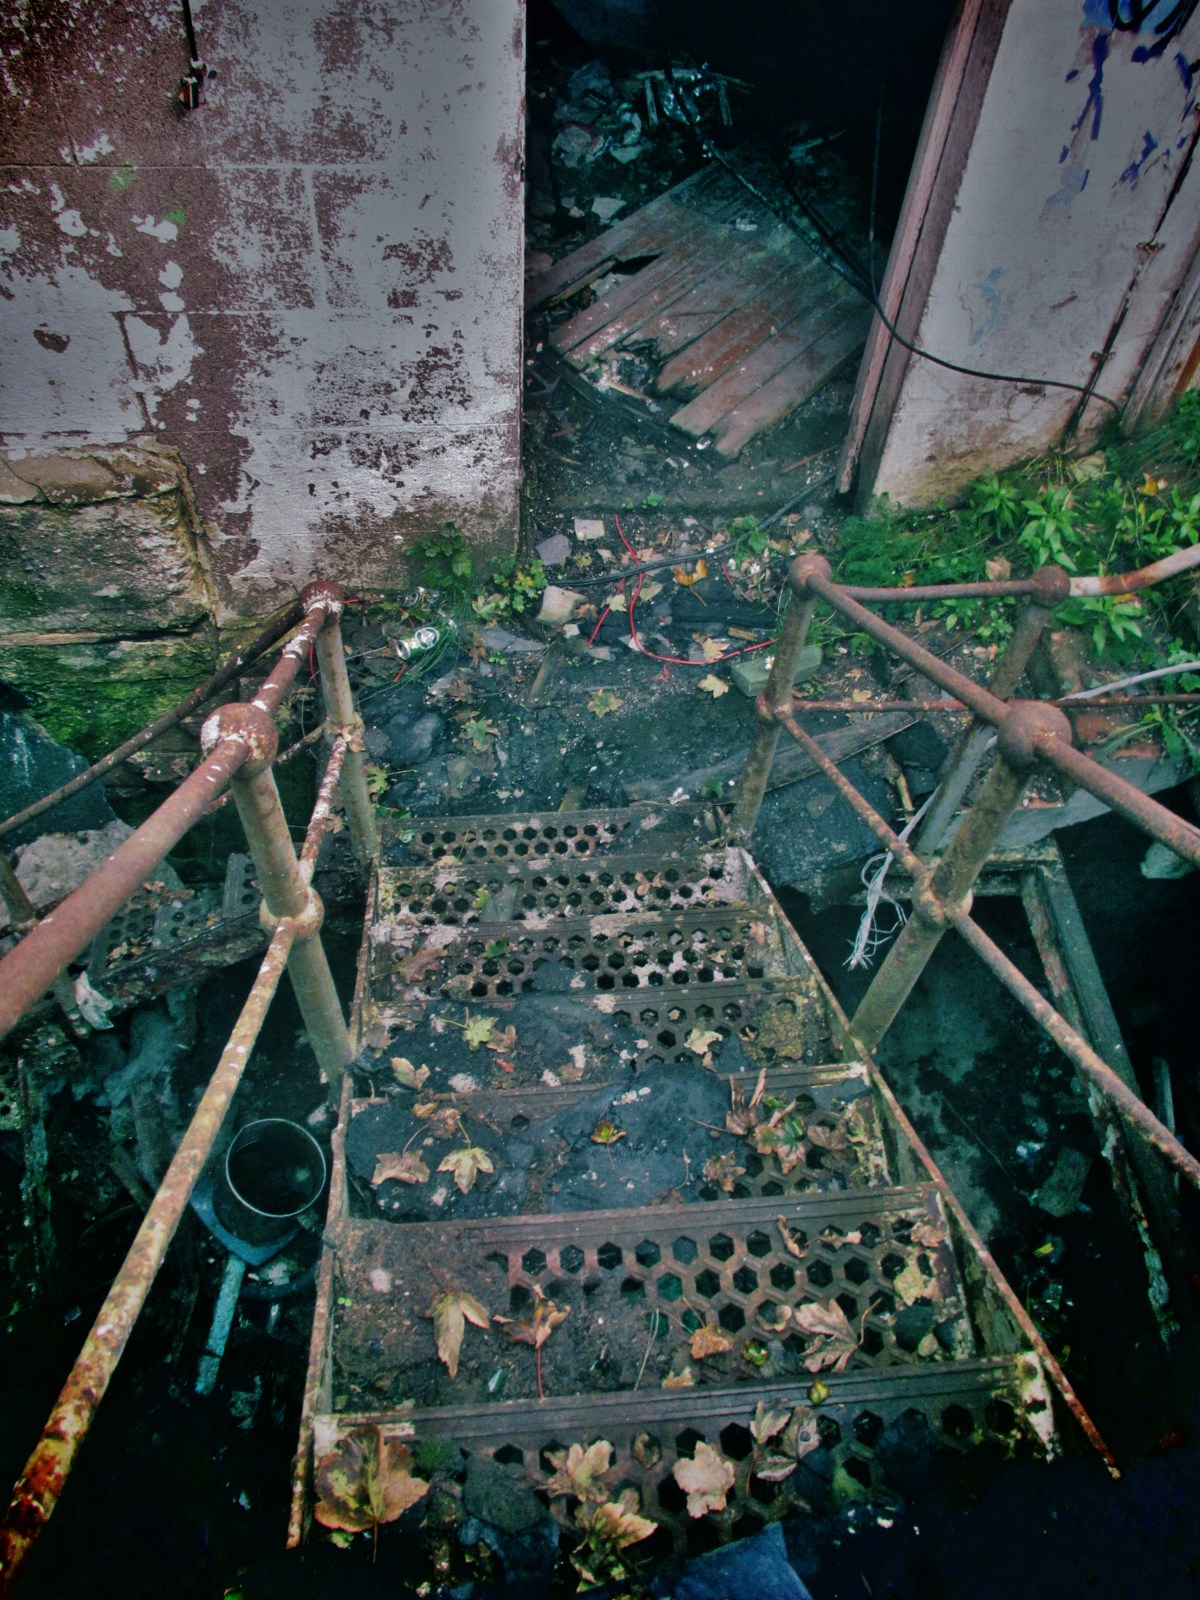 Abandoned Dun Laoghaire Baths, Dublin (Ireland) - Derelict World Photography – Lainey Quinn